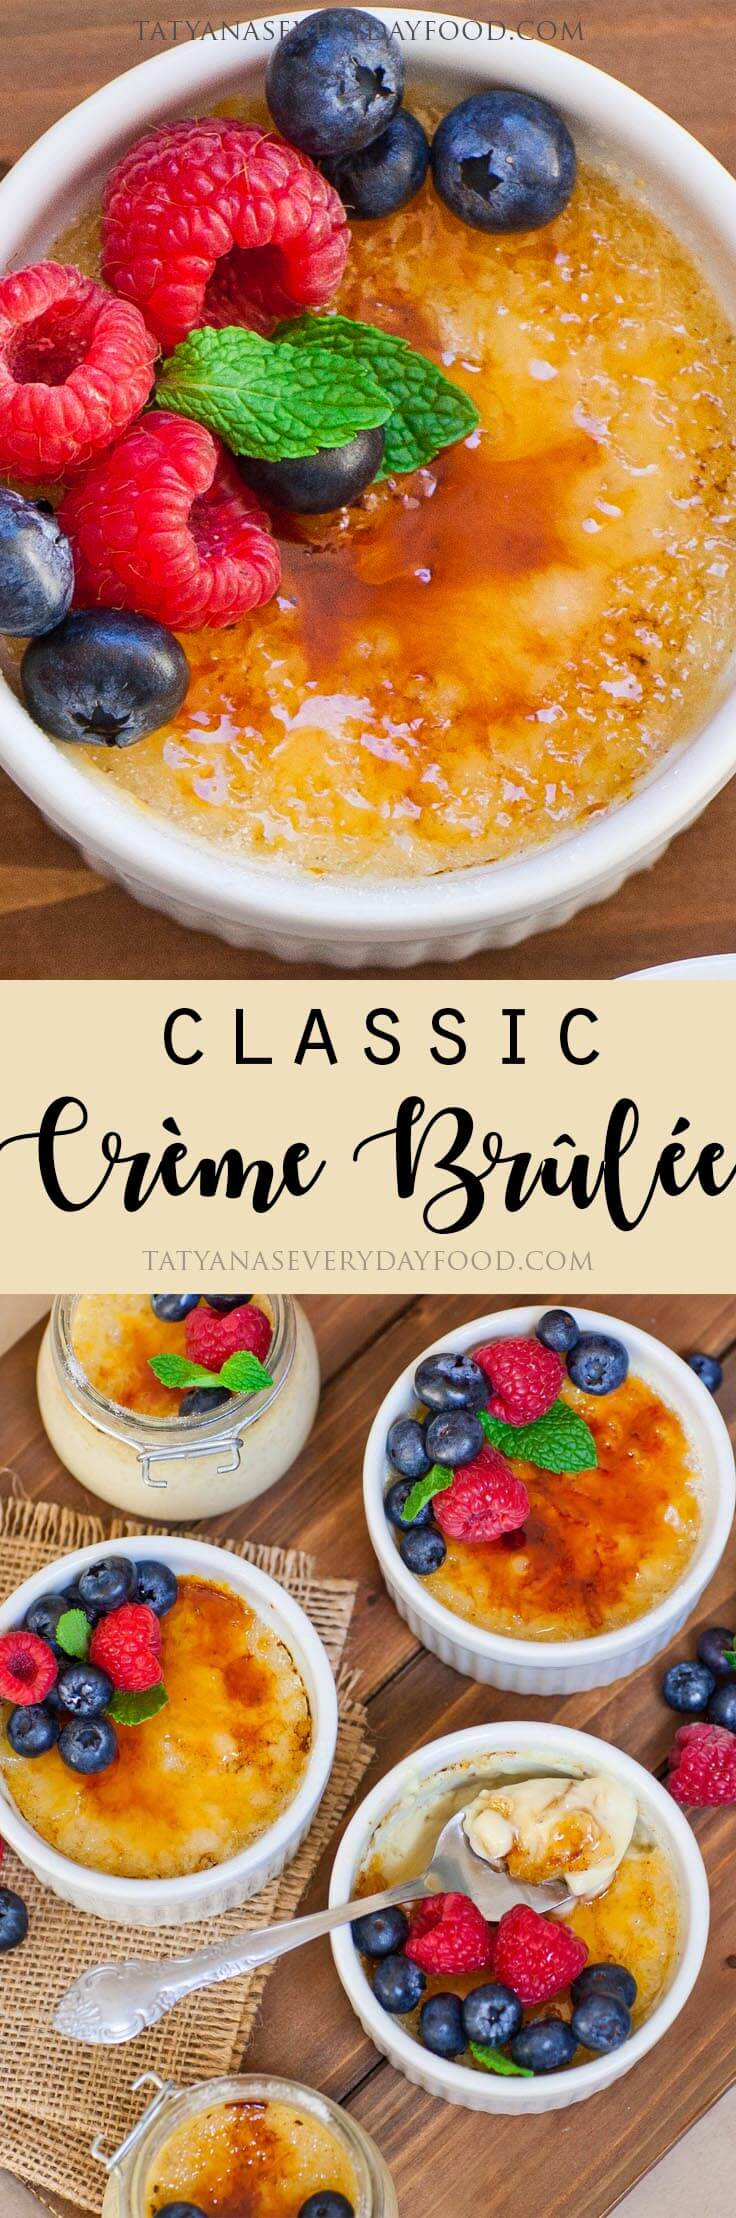 Classic Creme Brulee video recipe